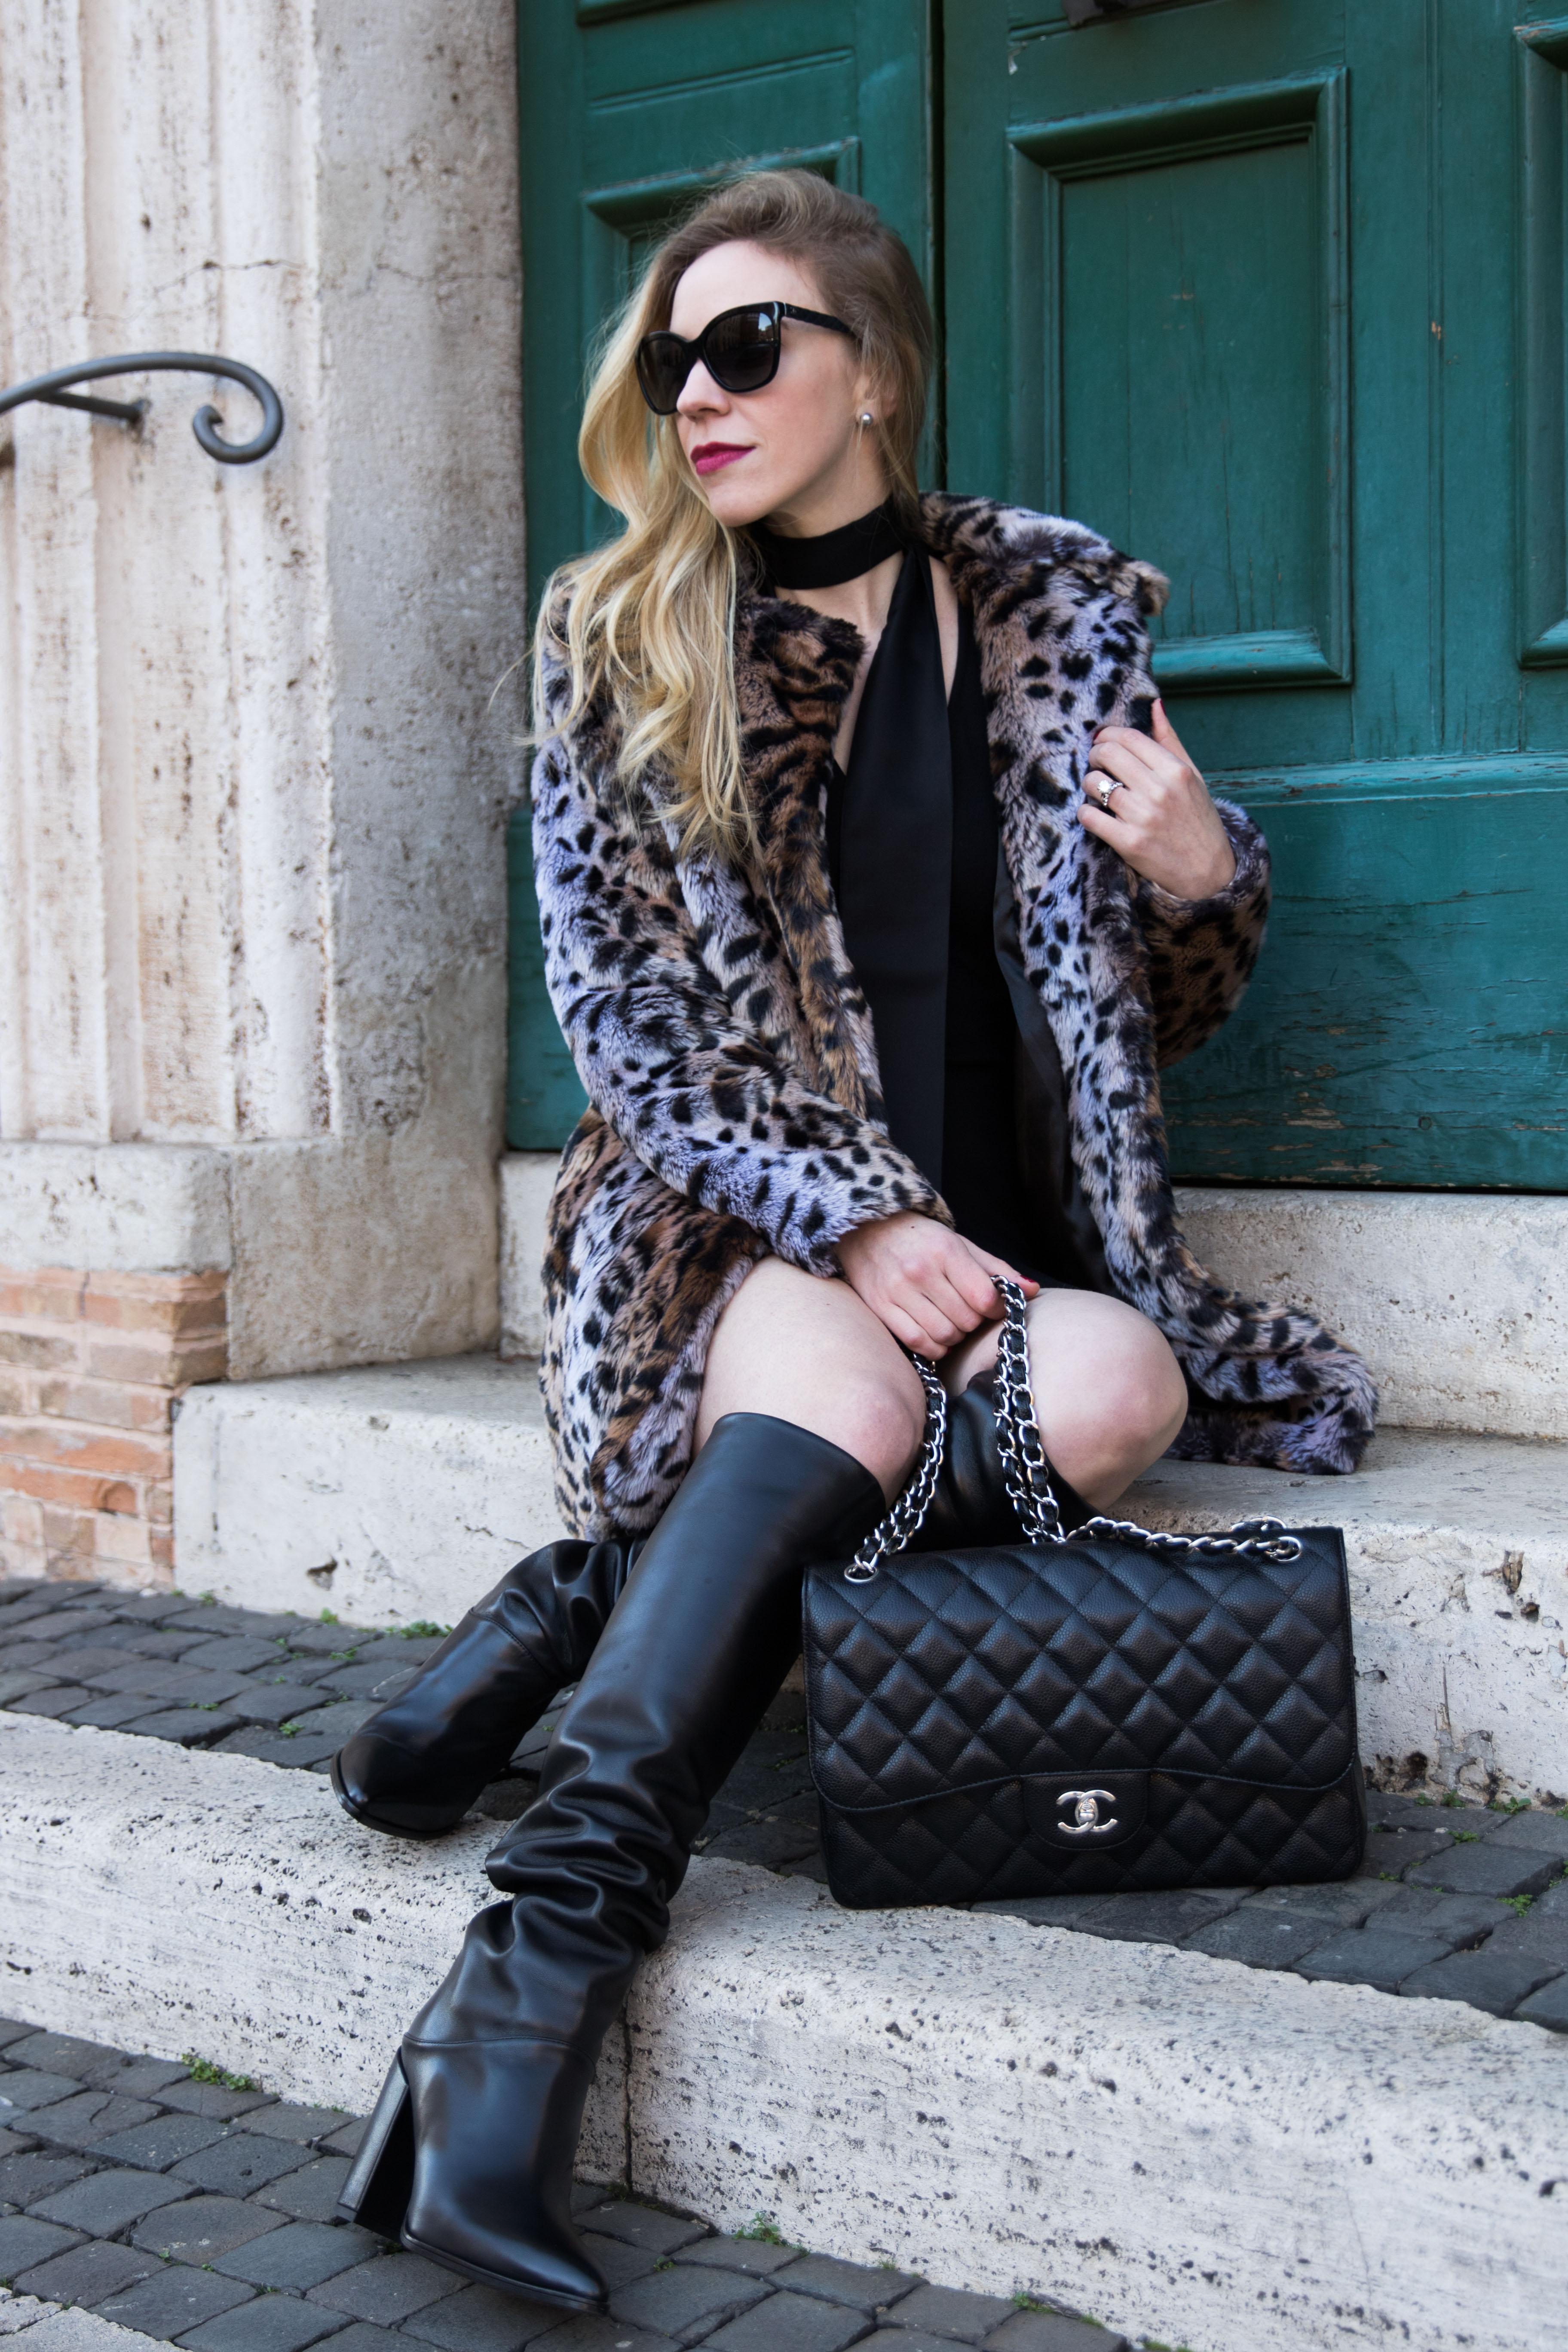 fashion-blogger-wearing-faux-fur-leopard-coat-with-black-dress-and-knee-high-boots-stuart-weitzman-scrunchy-black-leather-boots-chanel-jumbo-black-caviar